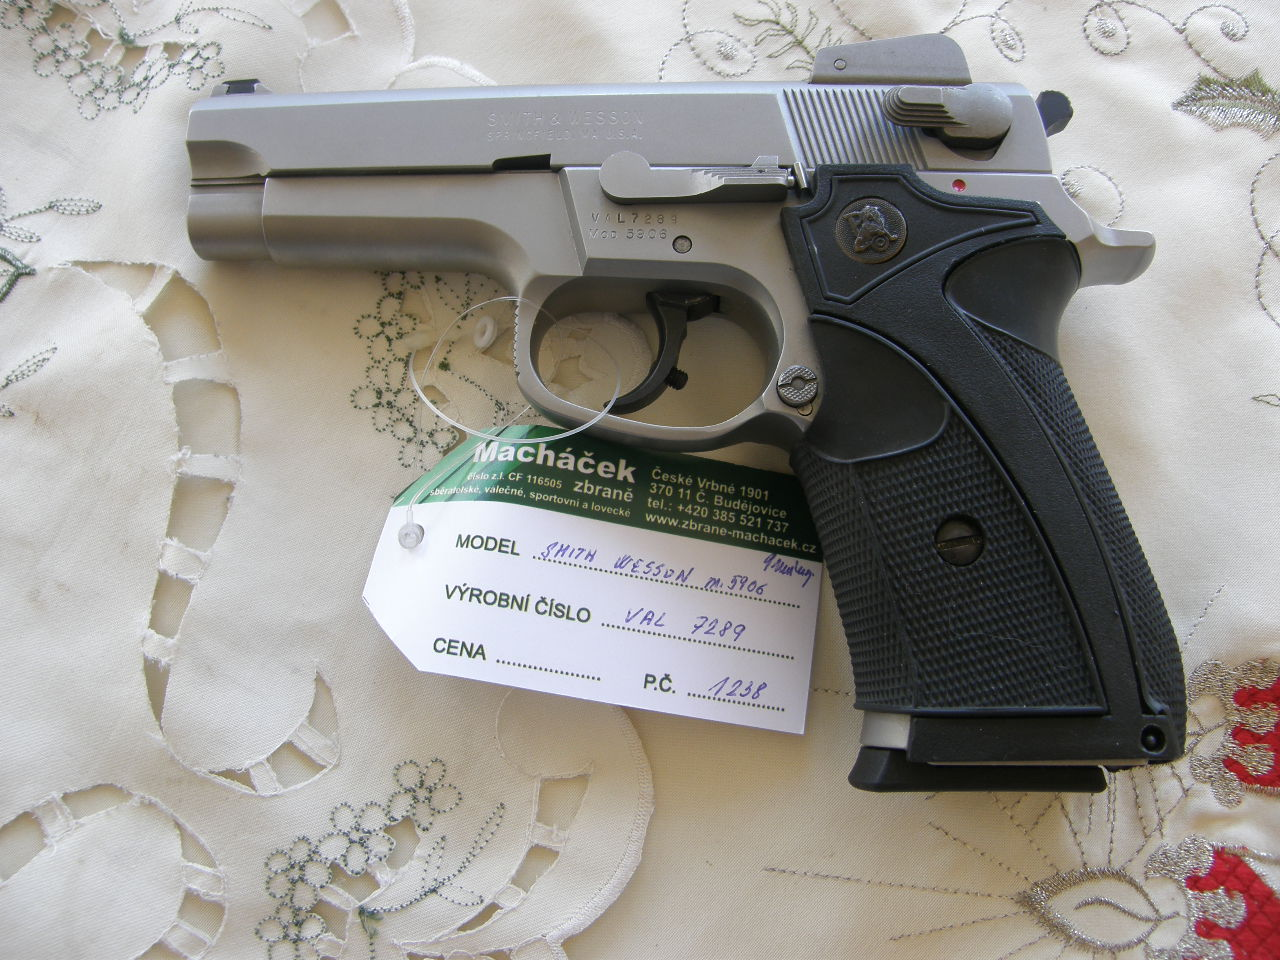 Pistole Smith Wesson Mod. 5906 v.č.VAL 7289 r. 9 mm Luger